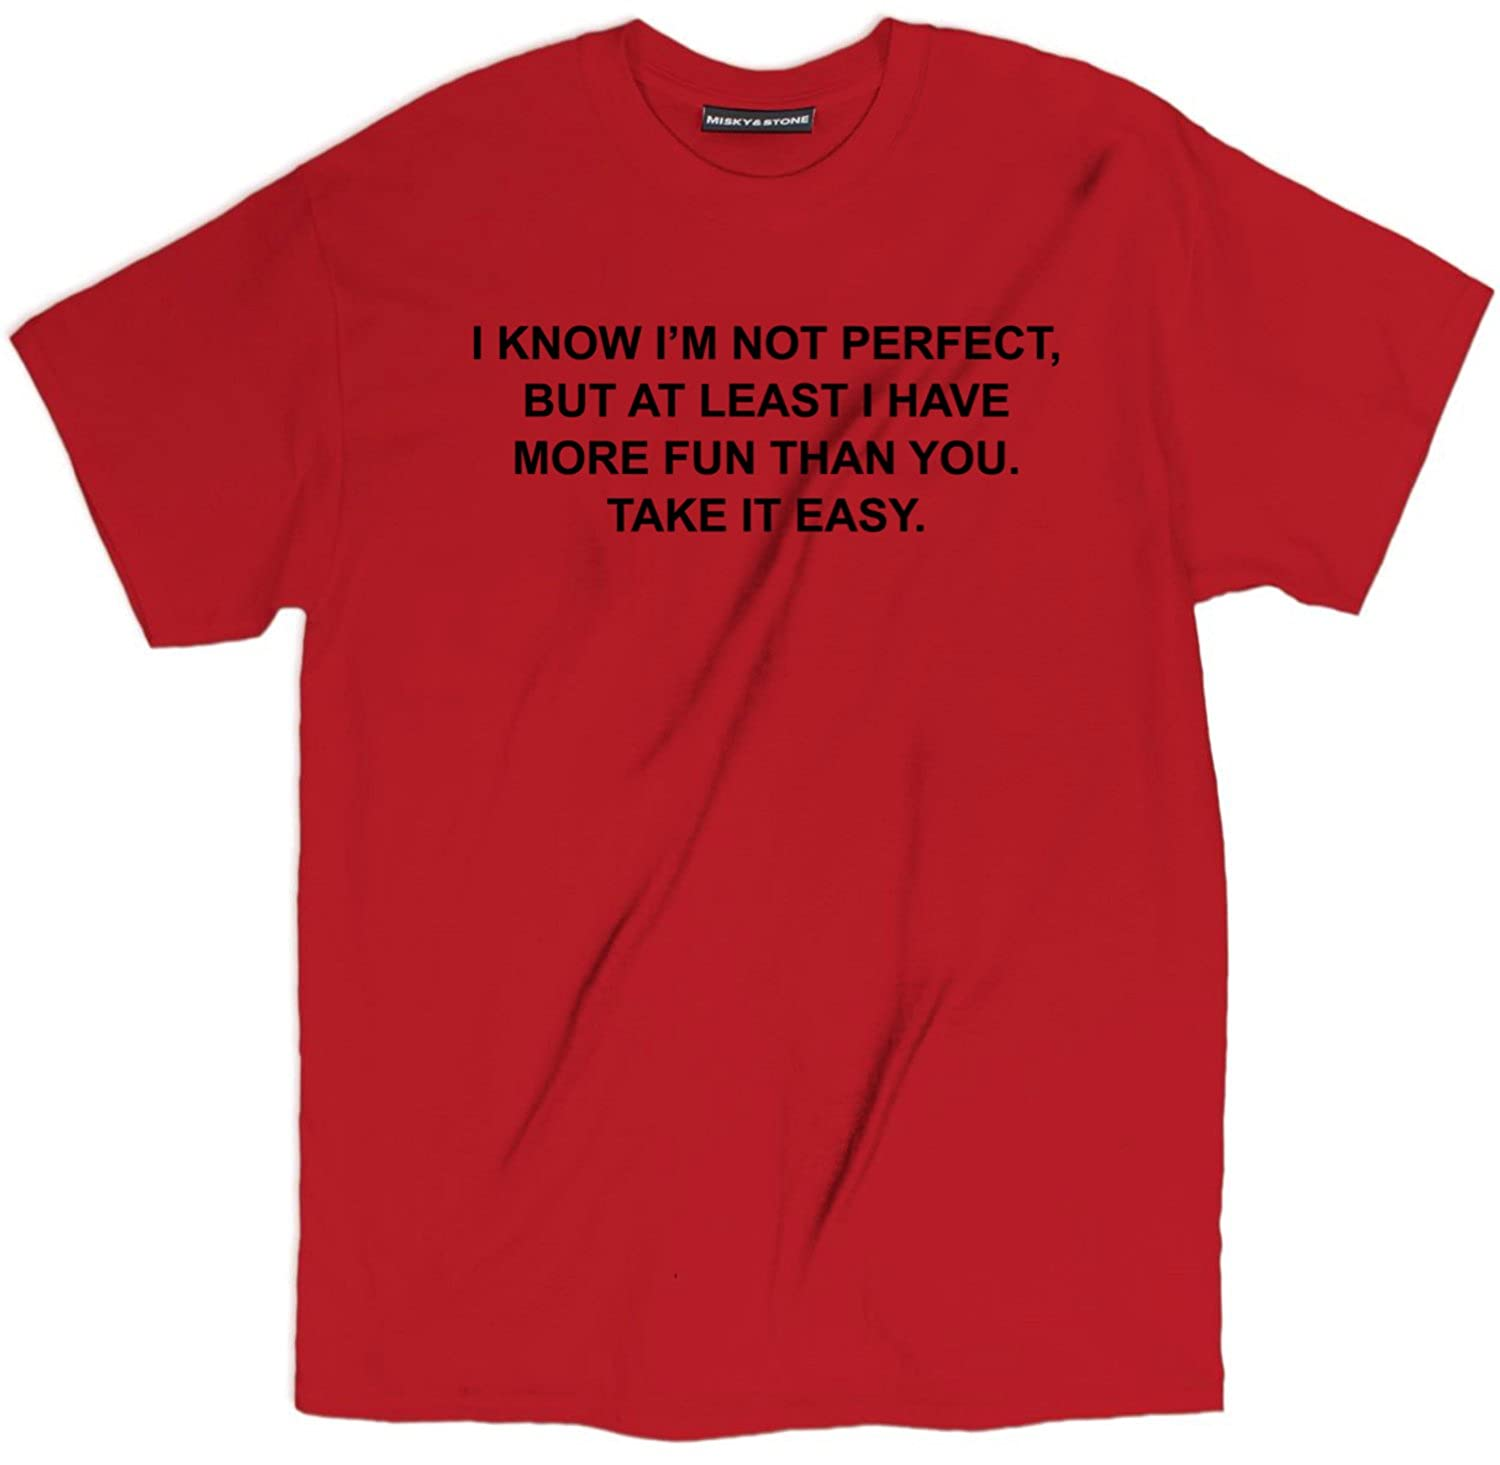 But I Have More Fun Cotton T Shirt S-3xl Misky /& Stone I Know Im Not Perfect